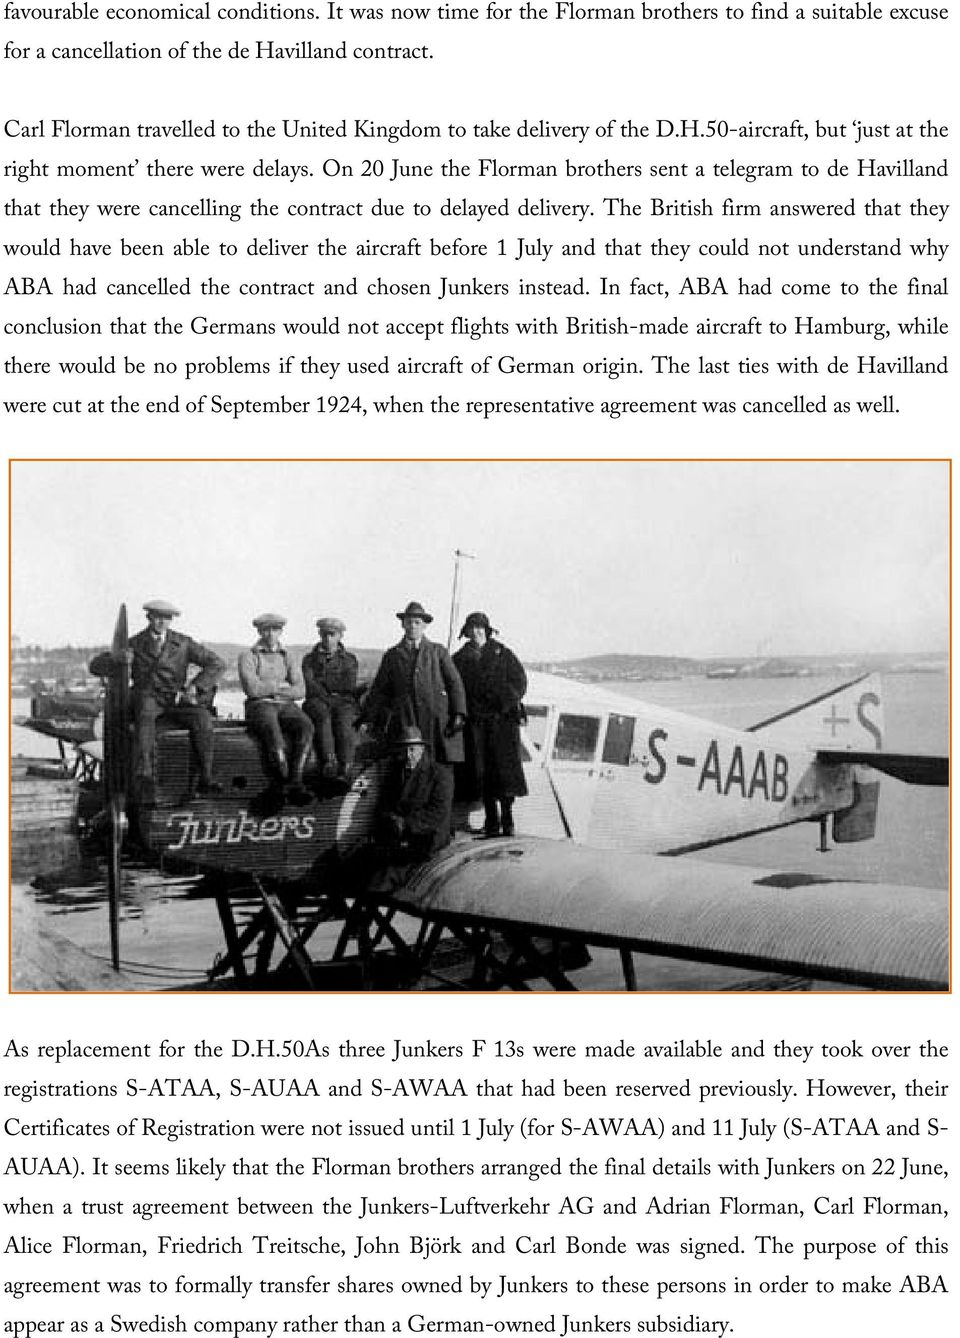 On 20 June the Florman brothers sent a telegram to de Havilland that they were cancelling the contract due to delayed delivery.